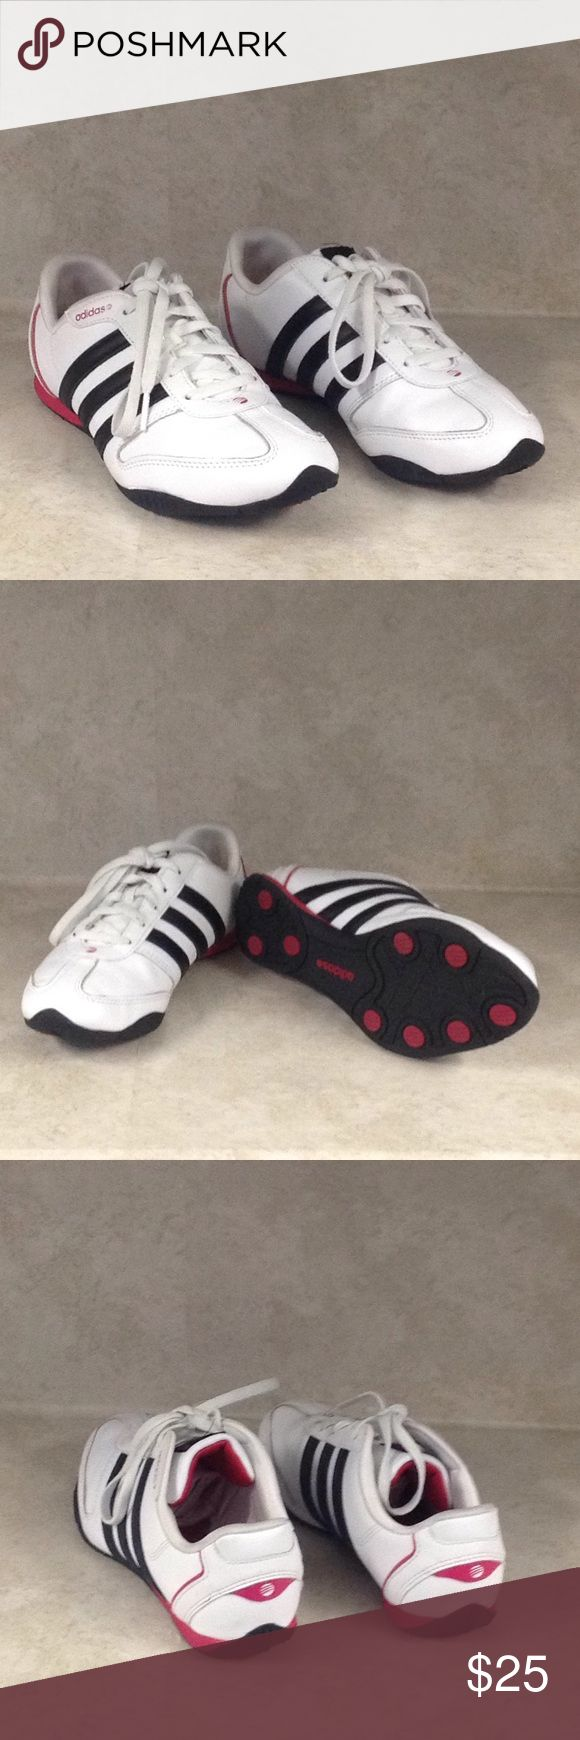 Adidas Vibe Complete Sneakers Adidas Vibe Complete low profile sneakers. White/Black/Pink. Worn once. New Condition. adidas Shoes Sneakers